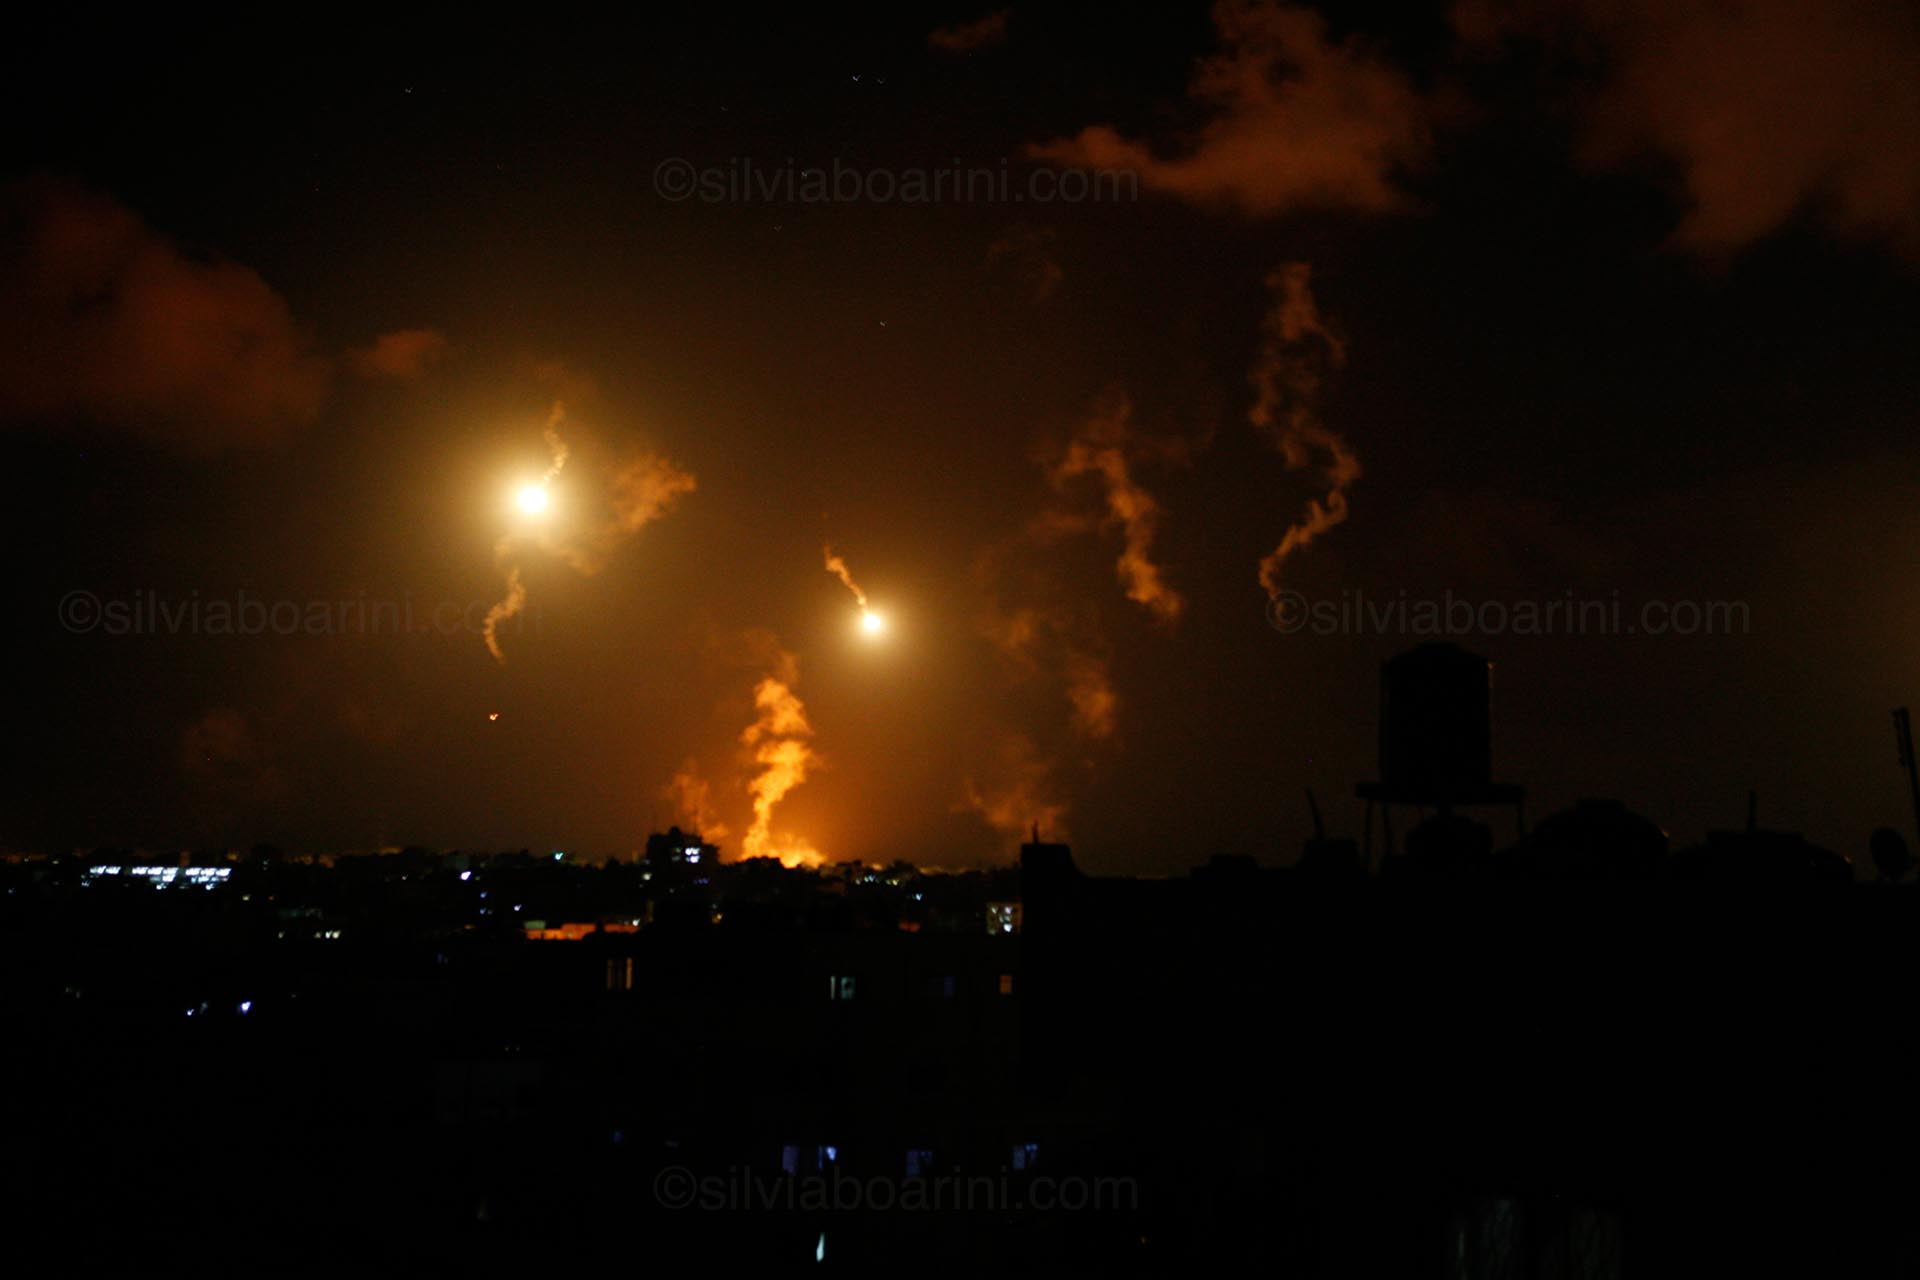 Flares light up the night sky in Shujayea. Gaza July 2014